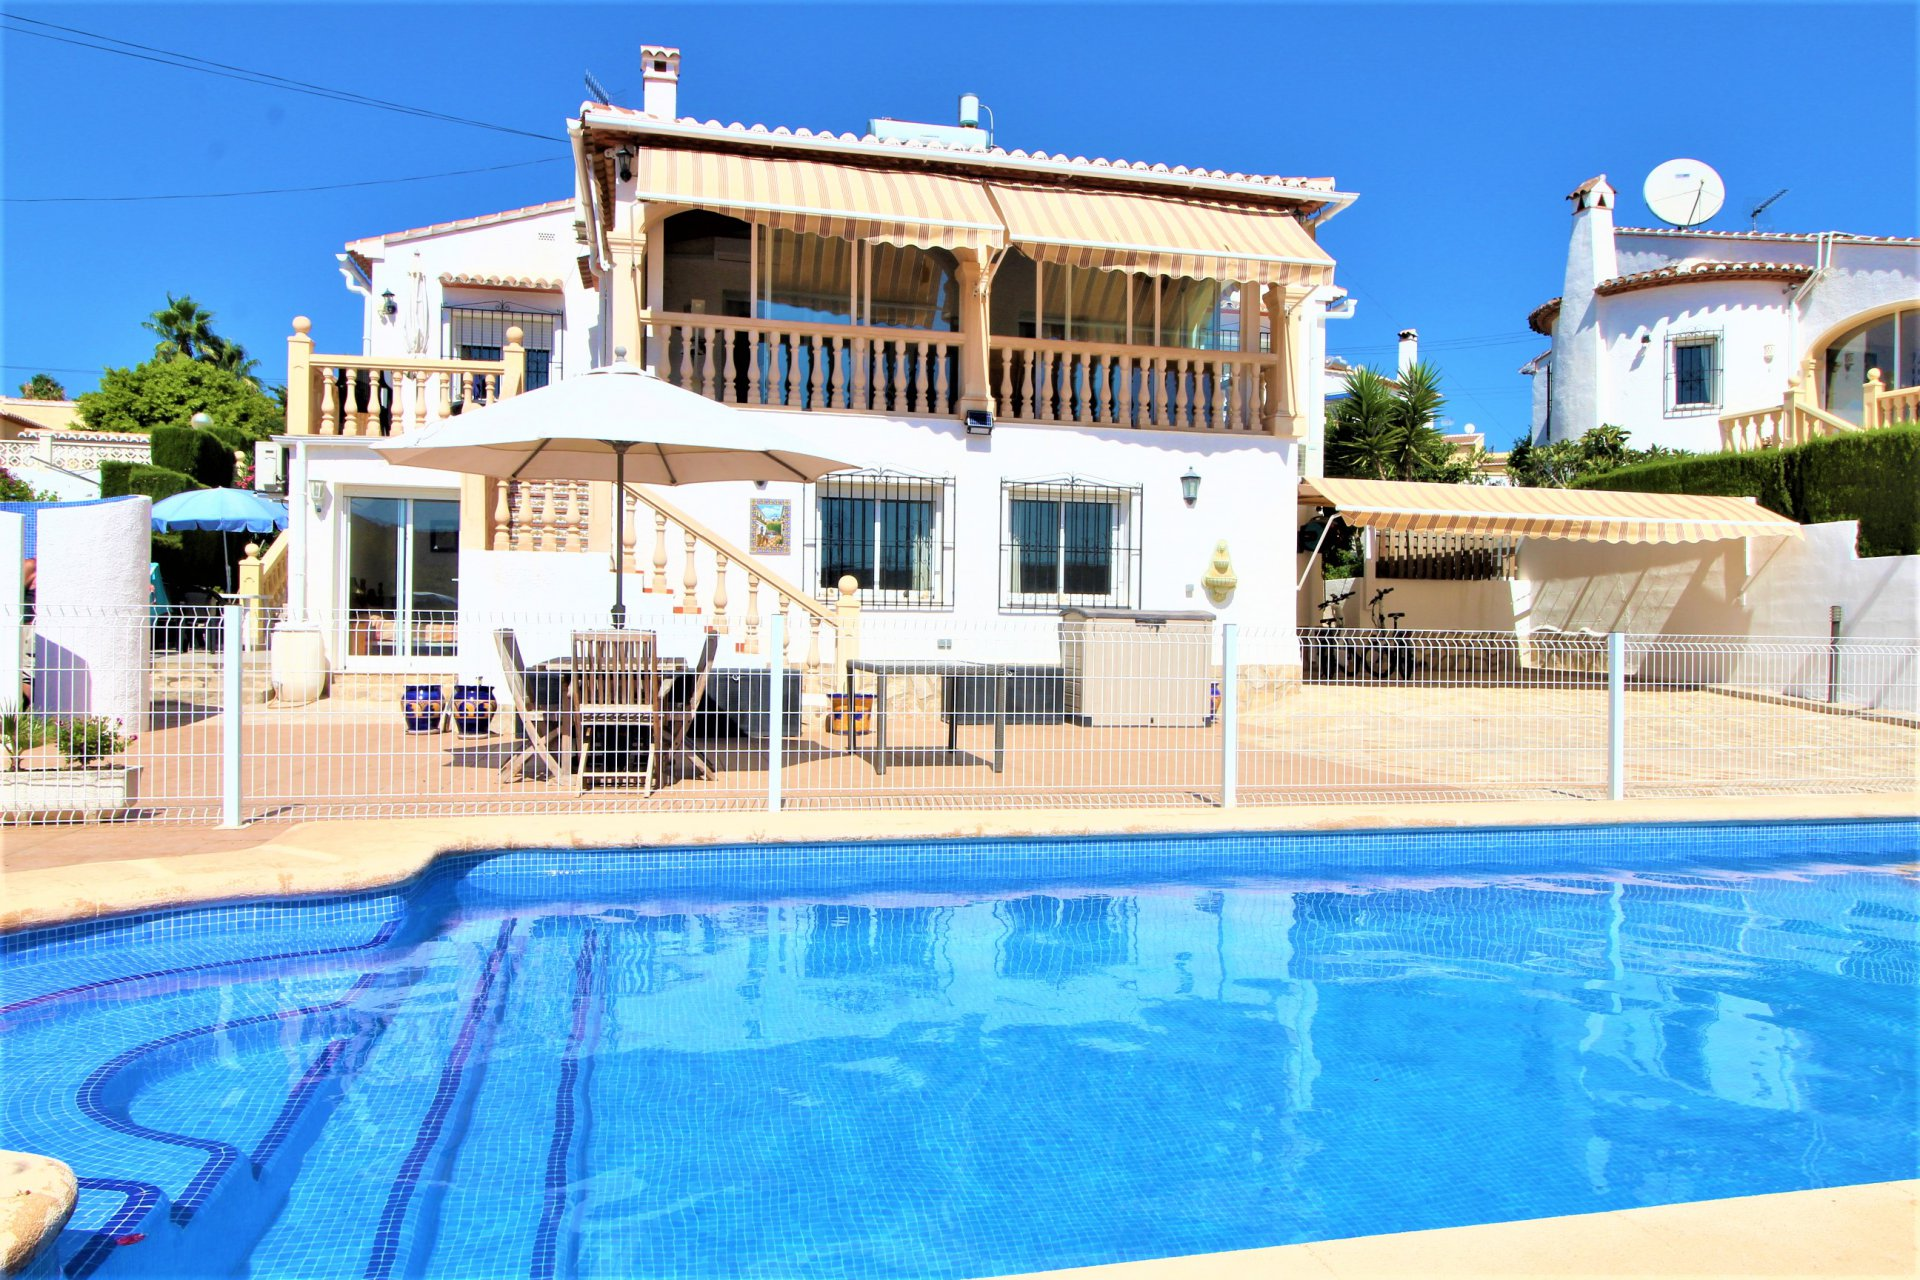 Villa with 2 extra independent apartments